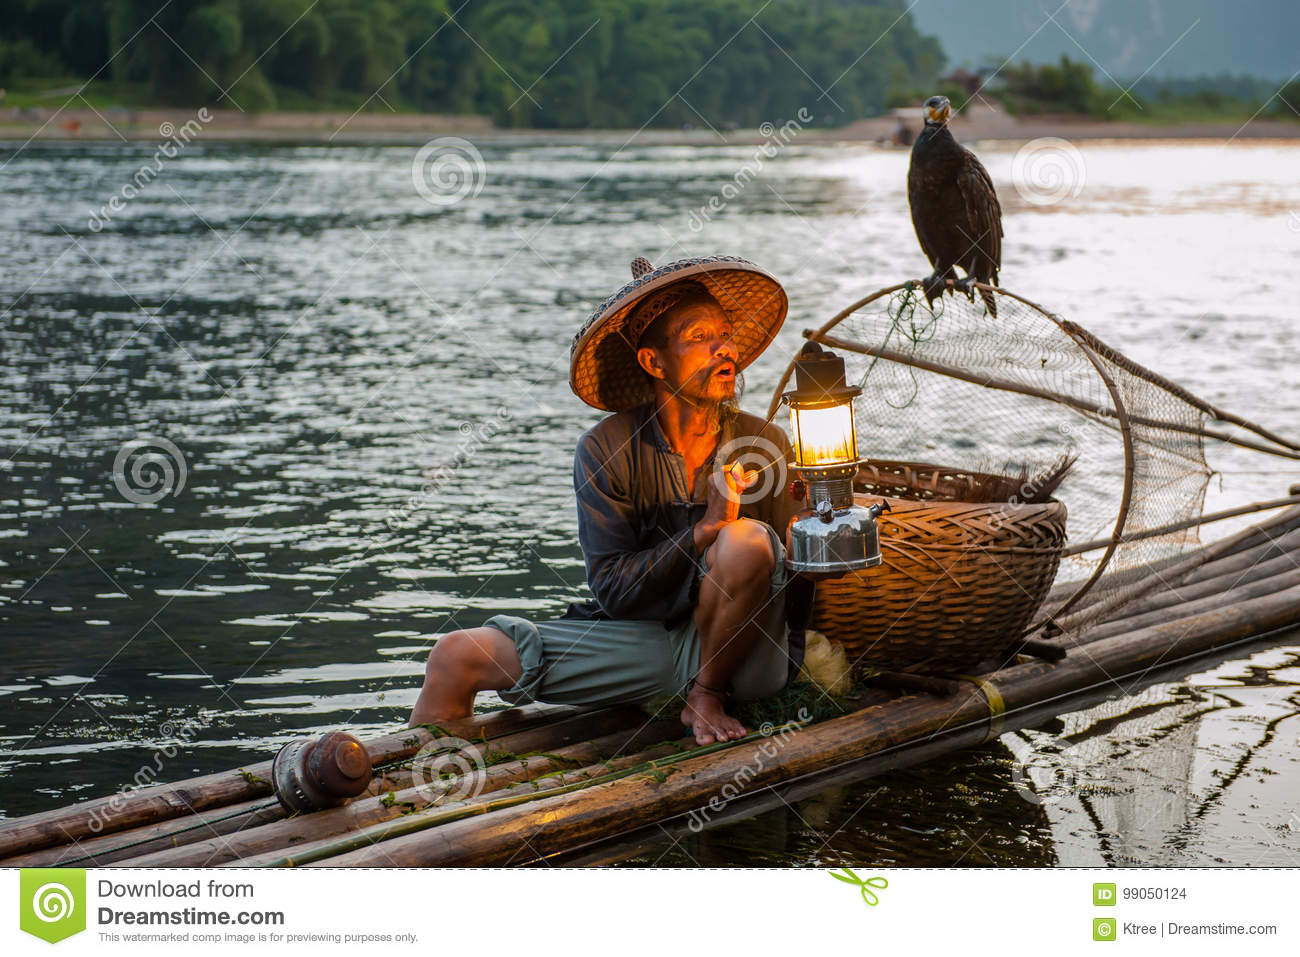 a94bb986151 Fishing old man editorial stock image. Image of fish - 99050124